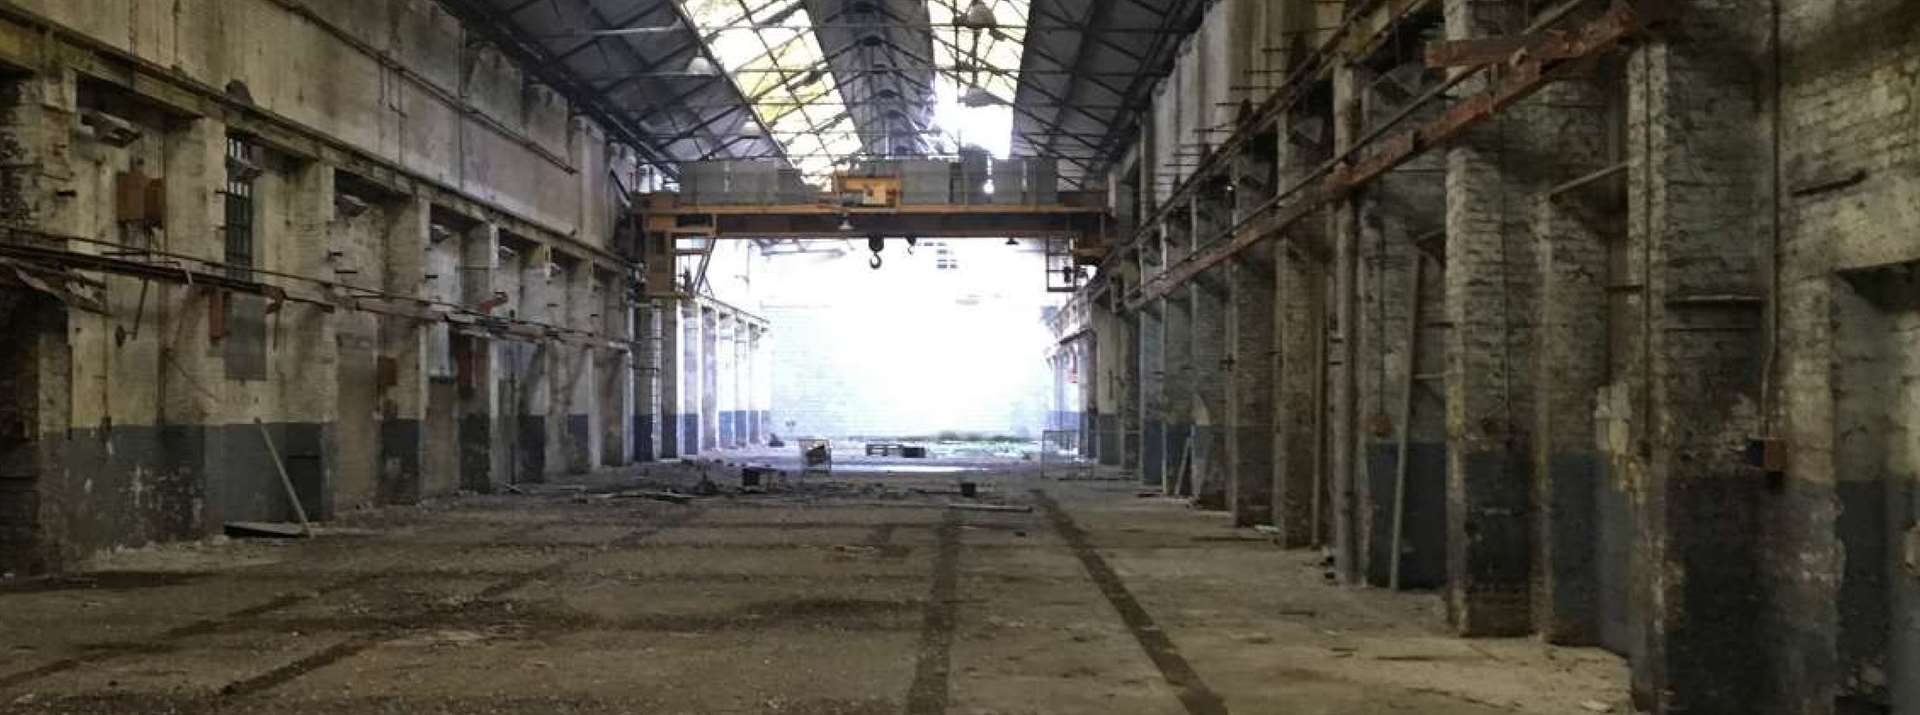 How the former railway works currently look inside